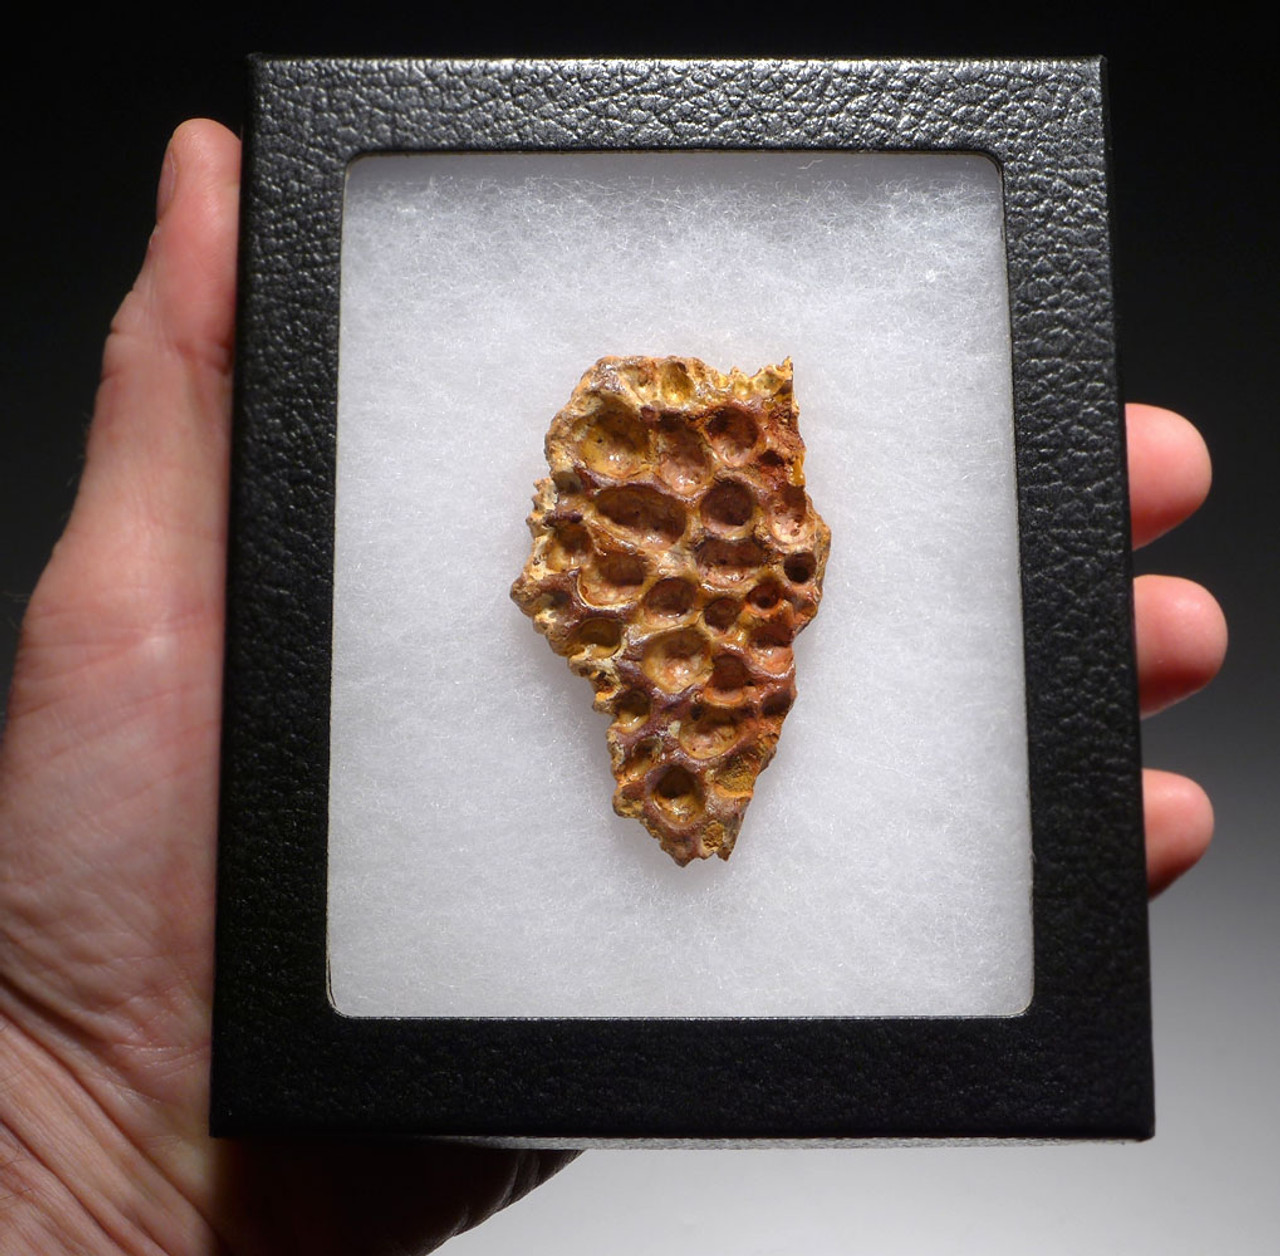 DINOSAUR-EATING CROCODILE SUPERCROC DERMAL ARMOR SCUTE FOSSIL FROM A LARGE SARCOSUCHUS IMPERATOR *CROC069